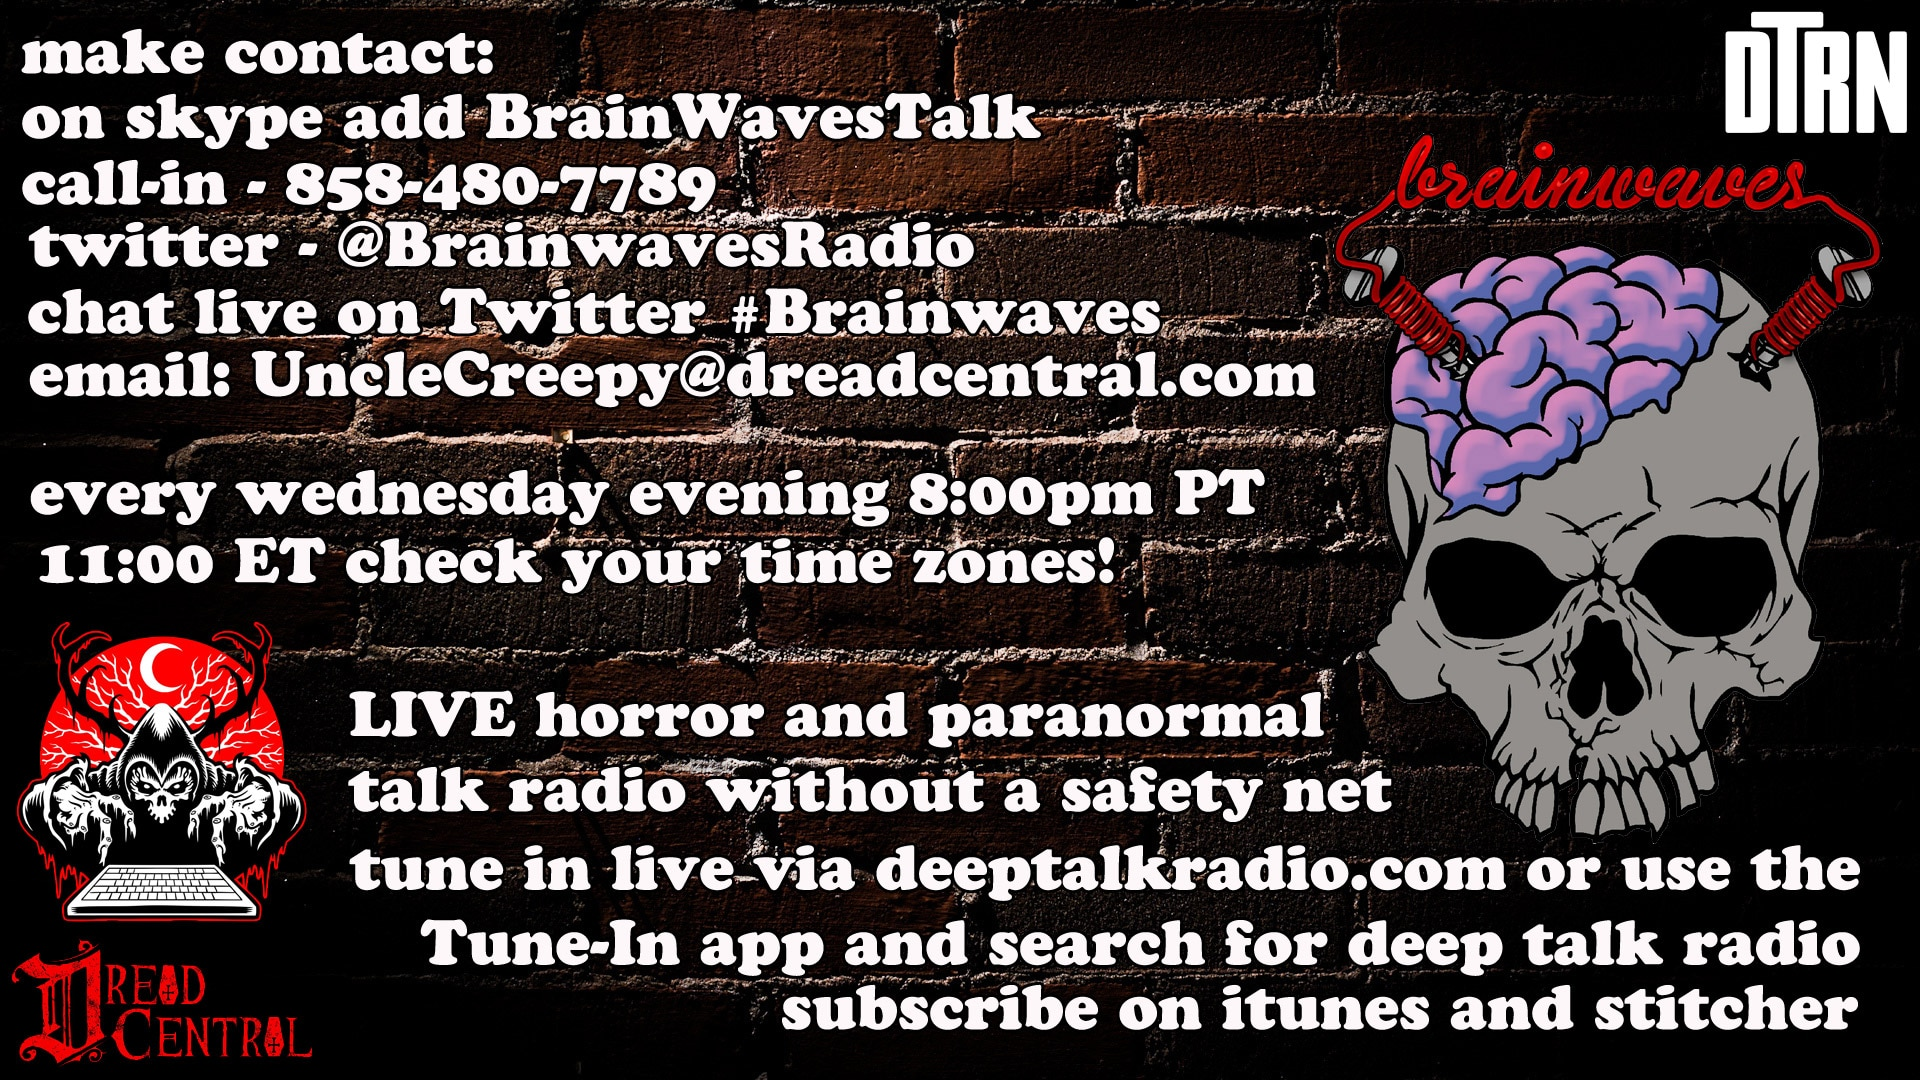 brainwaves updated contact - TONIGHT! #Brainwaves Episode 43: Filmmaker and Creature FX Artist Vincent J. Guastini